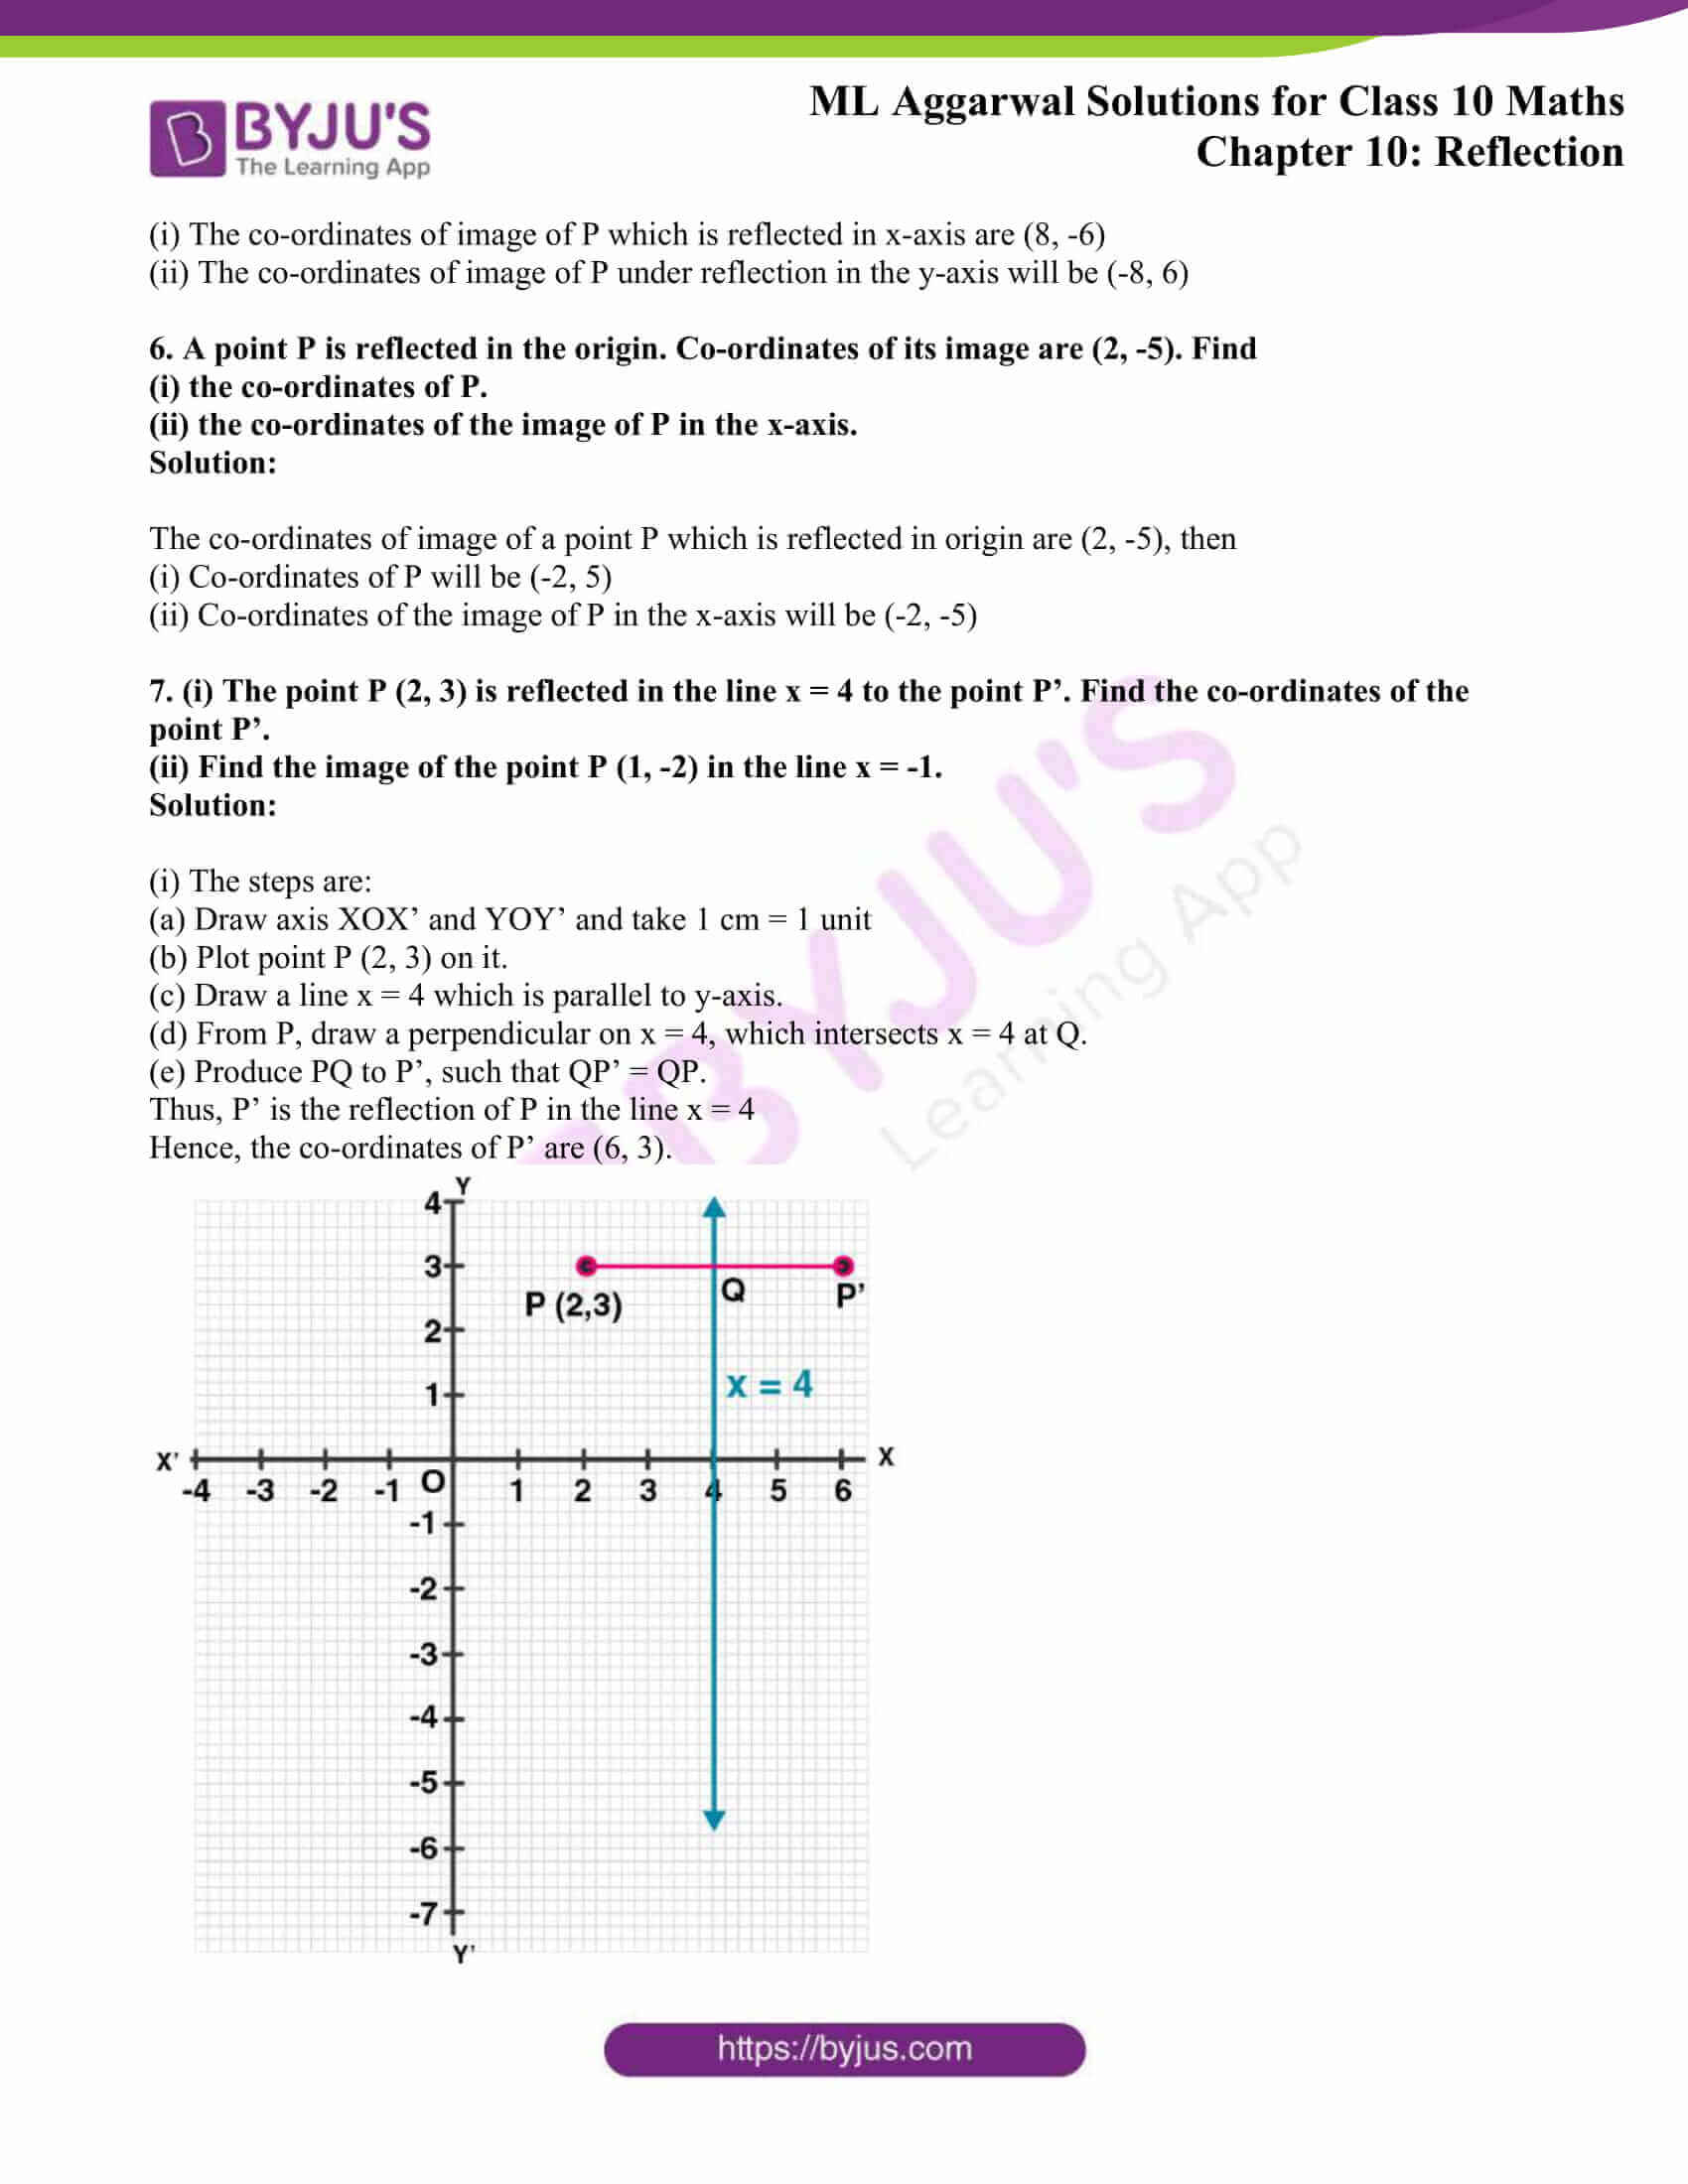 ml aggarwal solutions class 10 maths chapter 10 02